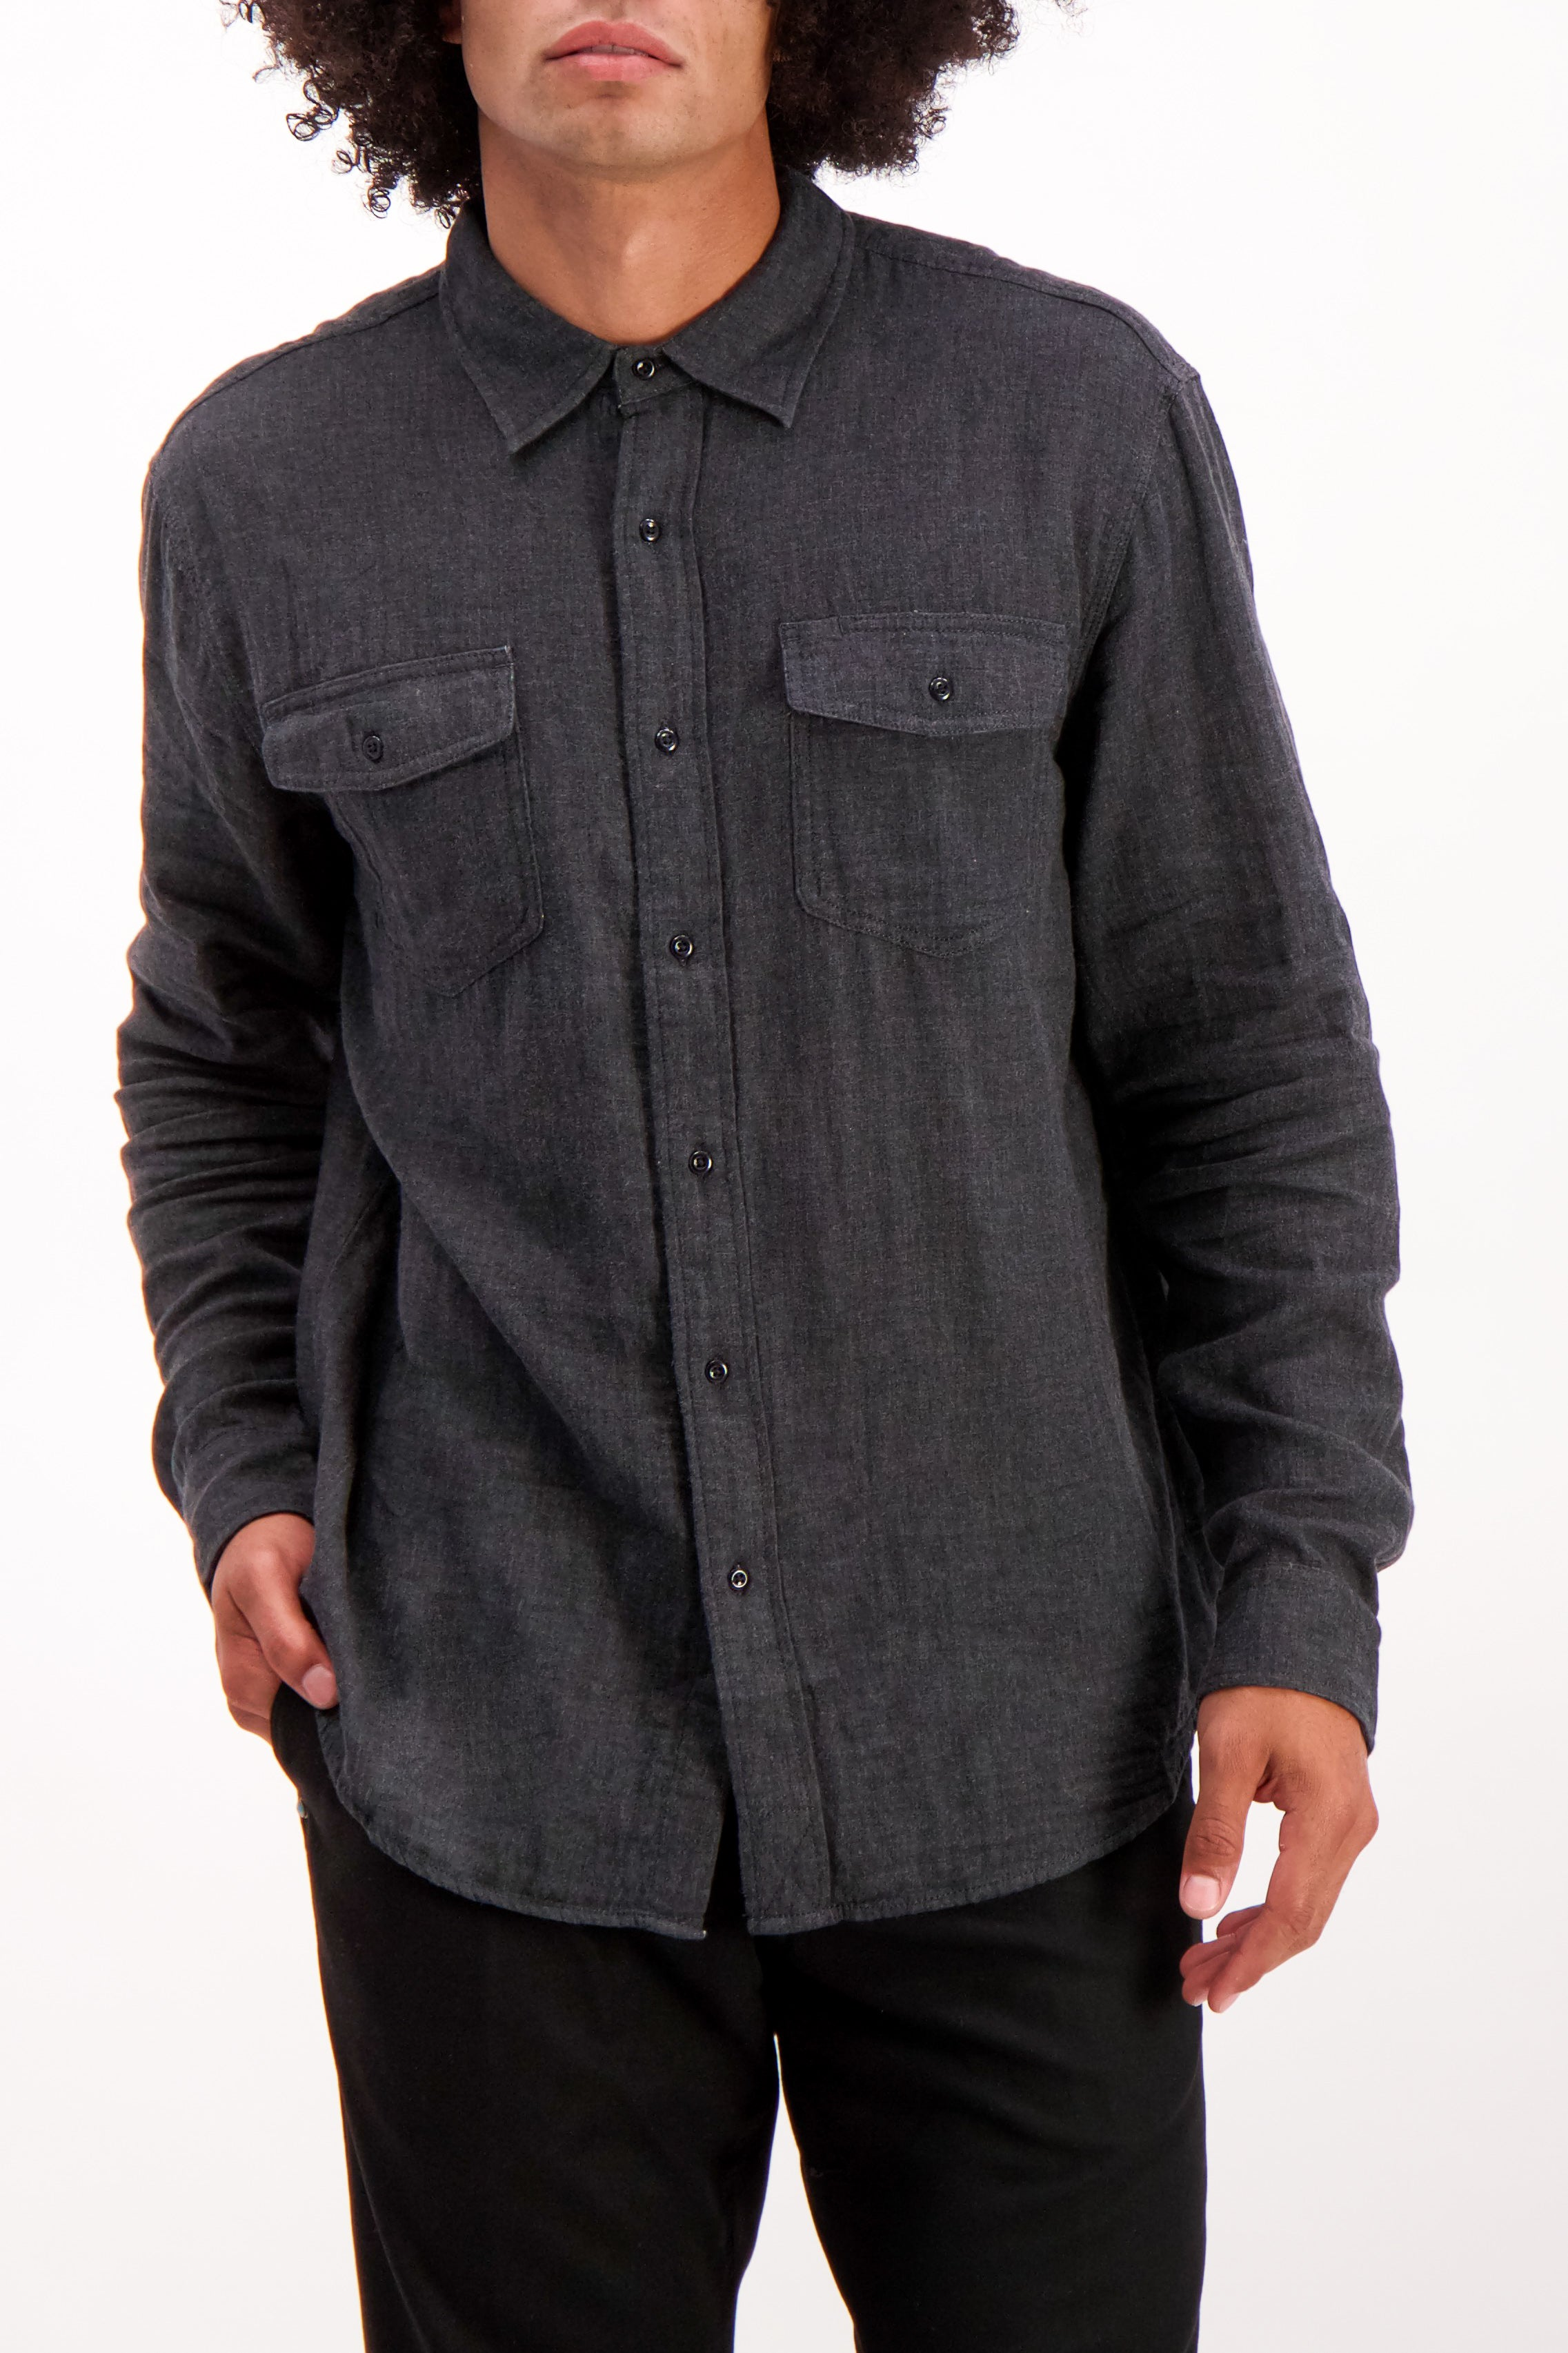 Front Crop Image Of Model Wearing Alex Mill Men's Long Sleeve Gauze Pocket Shirt Charcoal